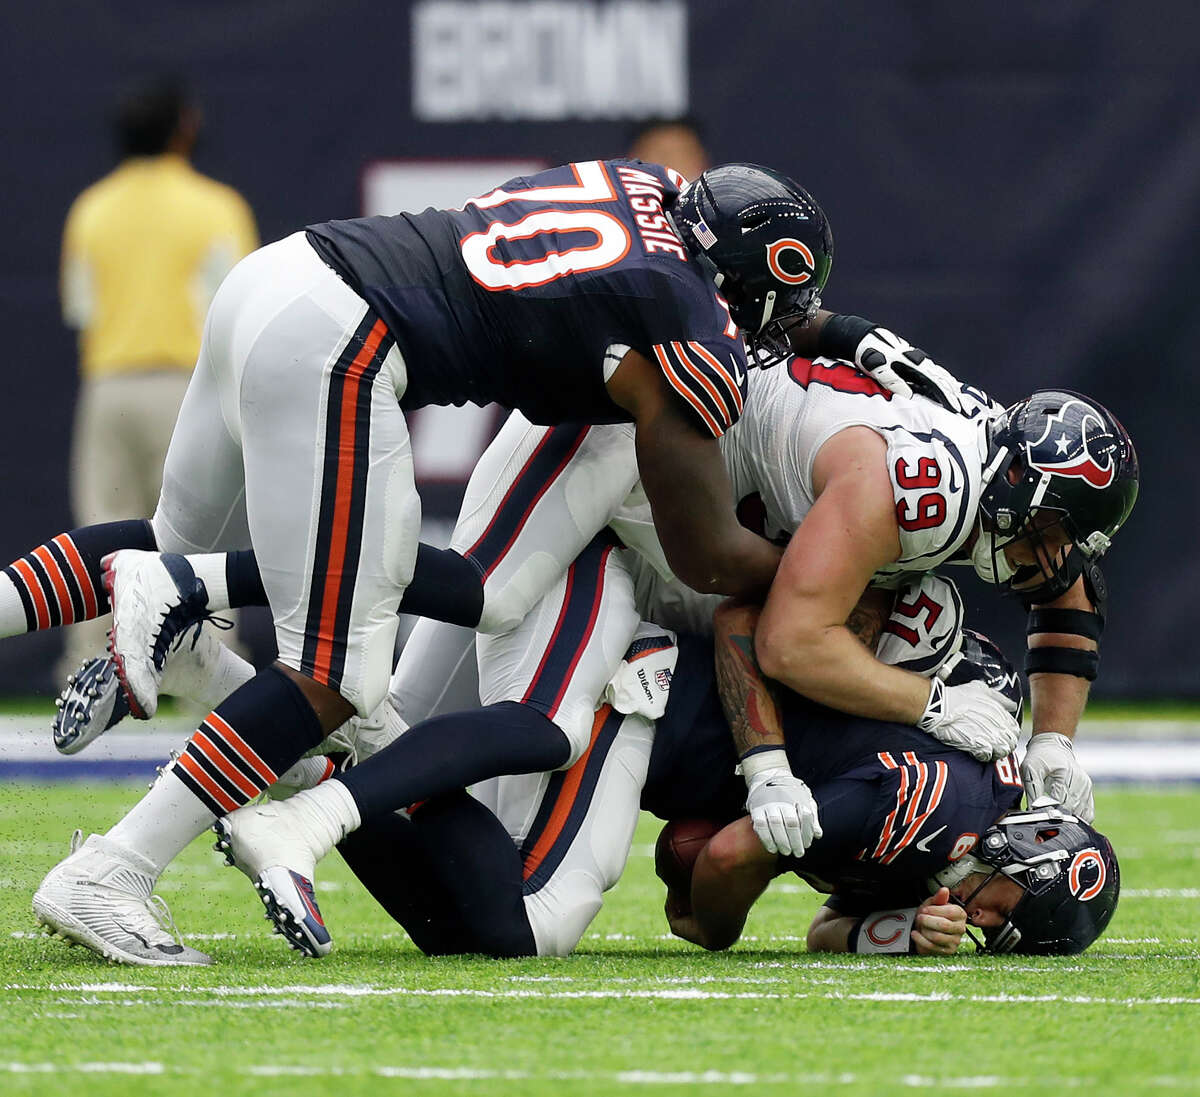 Chicago Bears quarterback Jay Cutler (6) gets sacked by Houston Texans outside linebacker John Simon (51) and defensive end J.J. Watt (99) as Bears tackle Bobby Massie (70) tries to help his QB during the fourth quarter of an NFL game at NRG Stadium,Sunday, Sept. 11, 2016 in Houston.